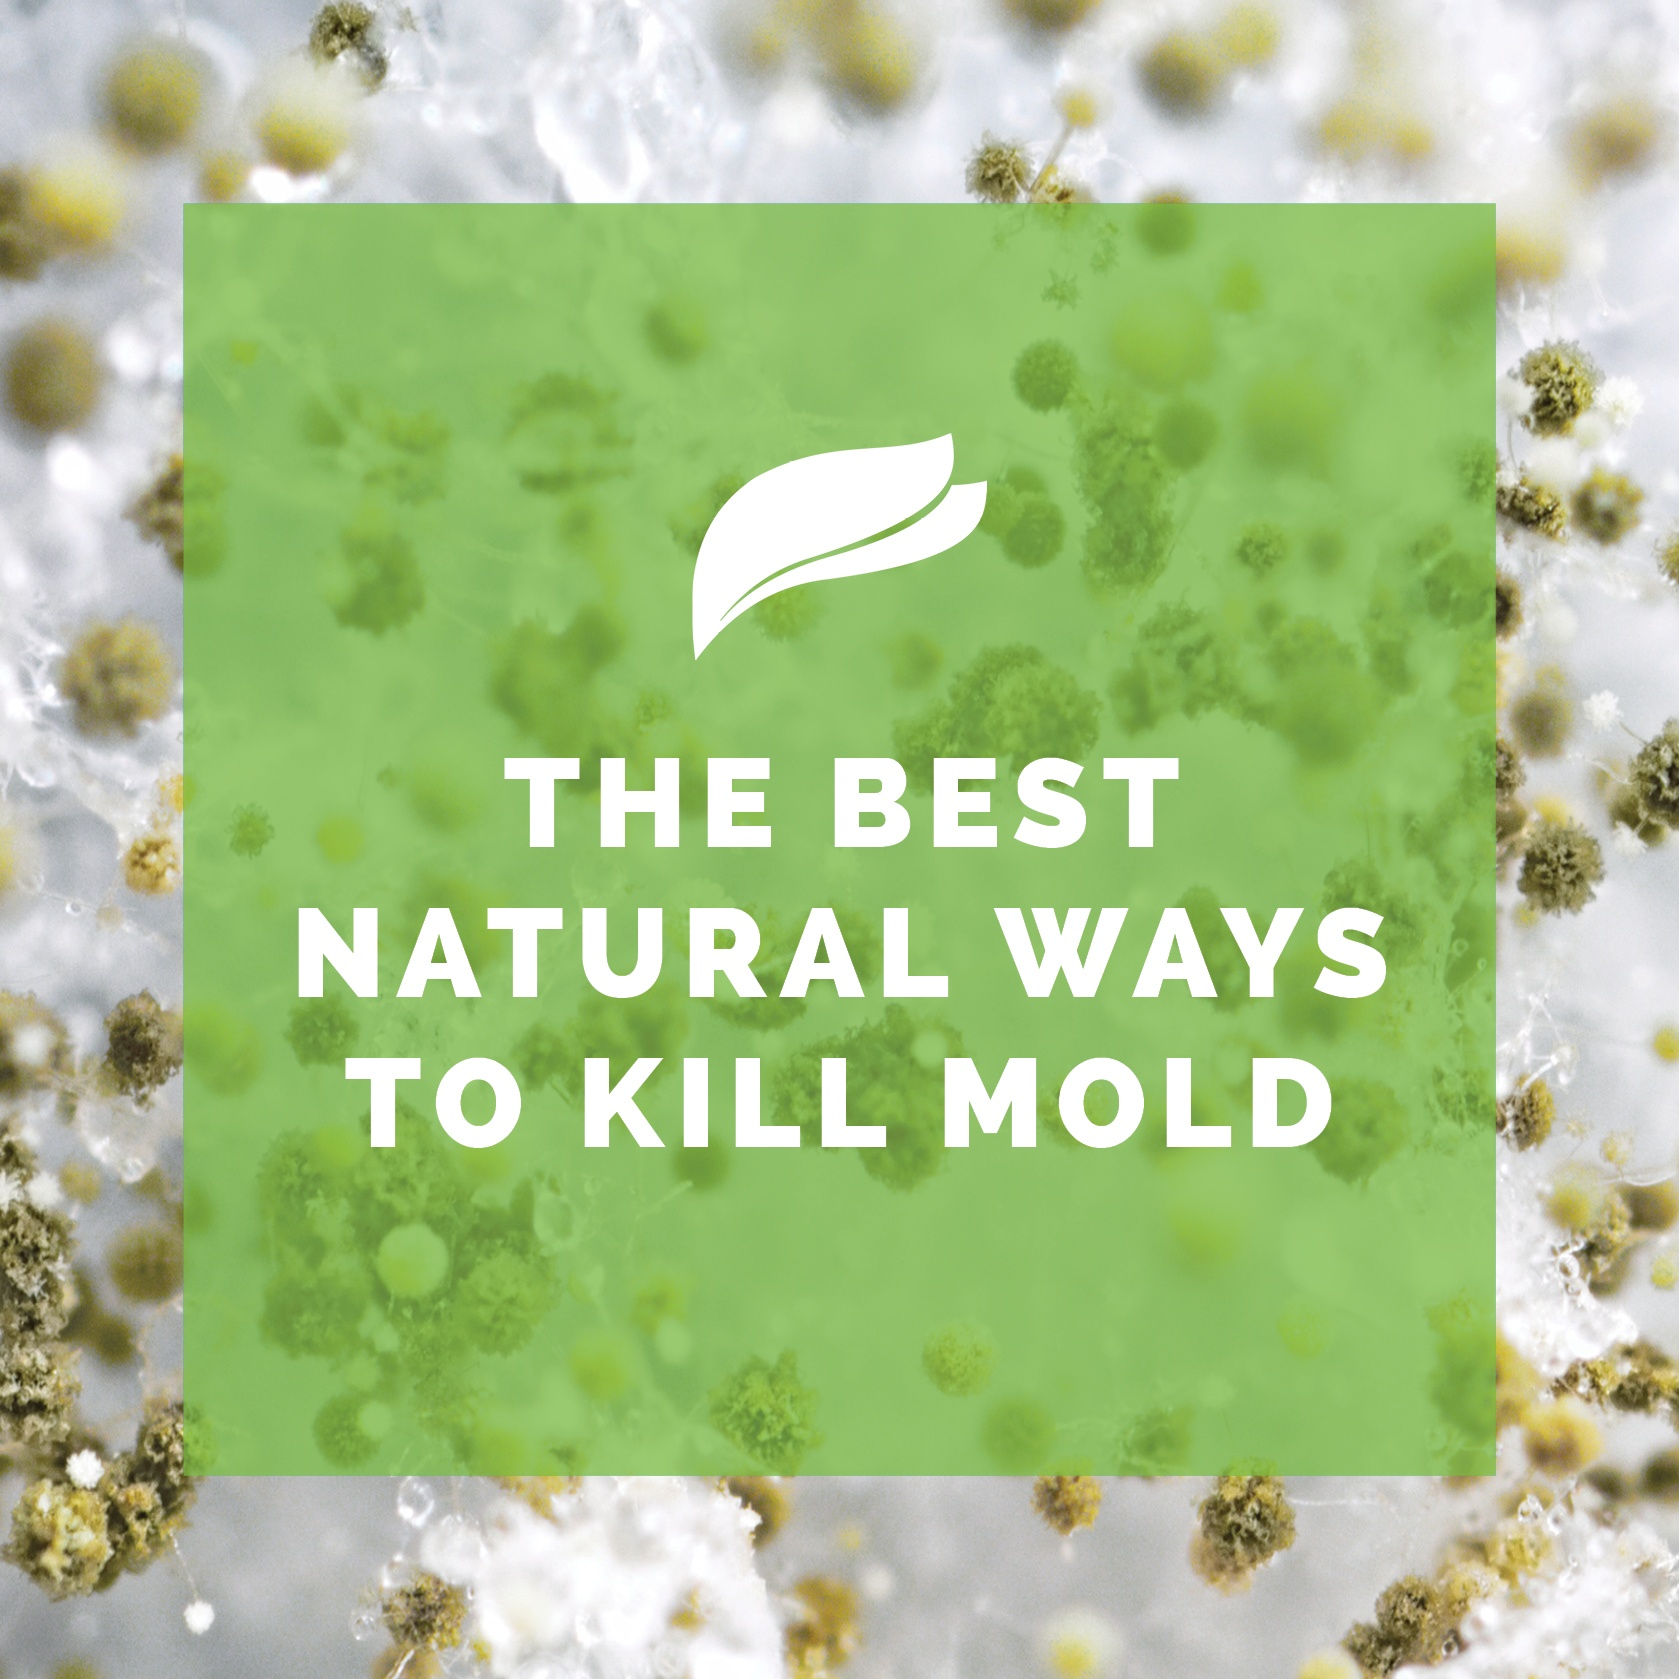 The Best Natural Ways To Kill Mold